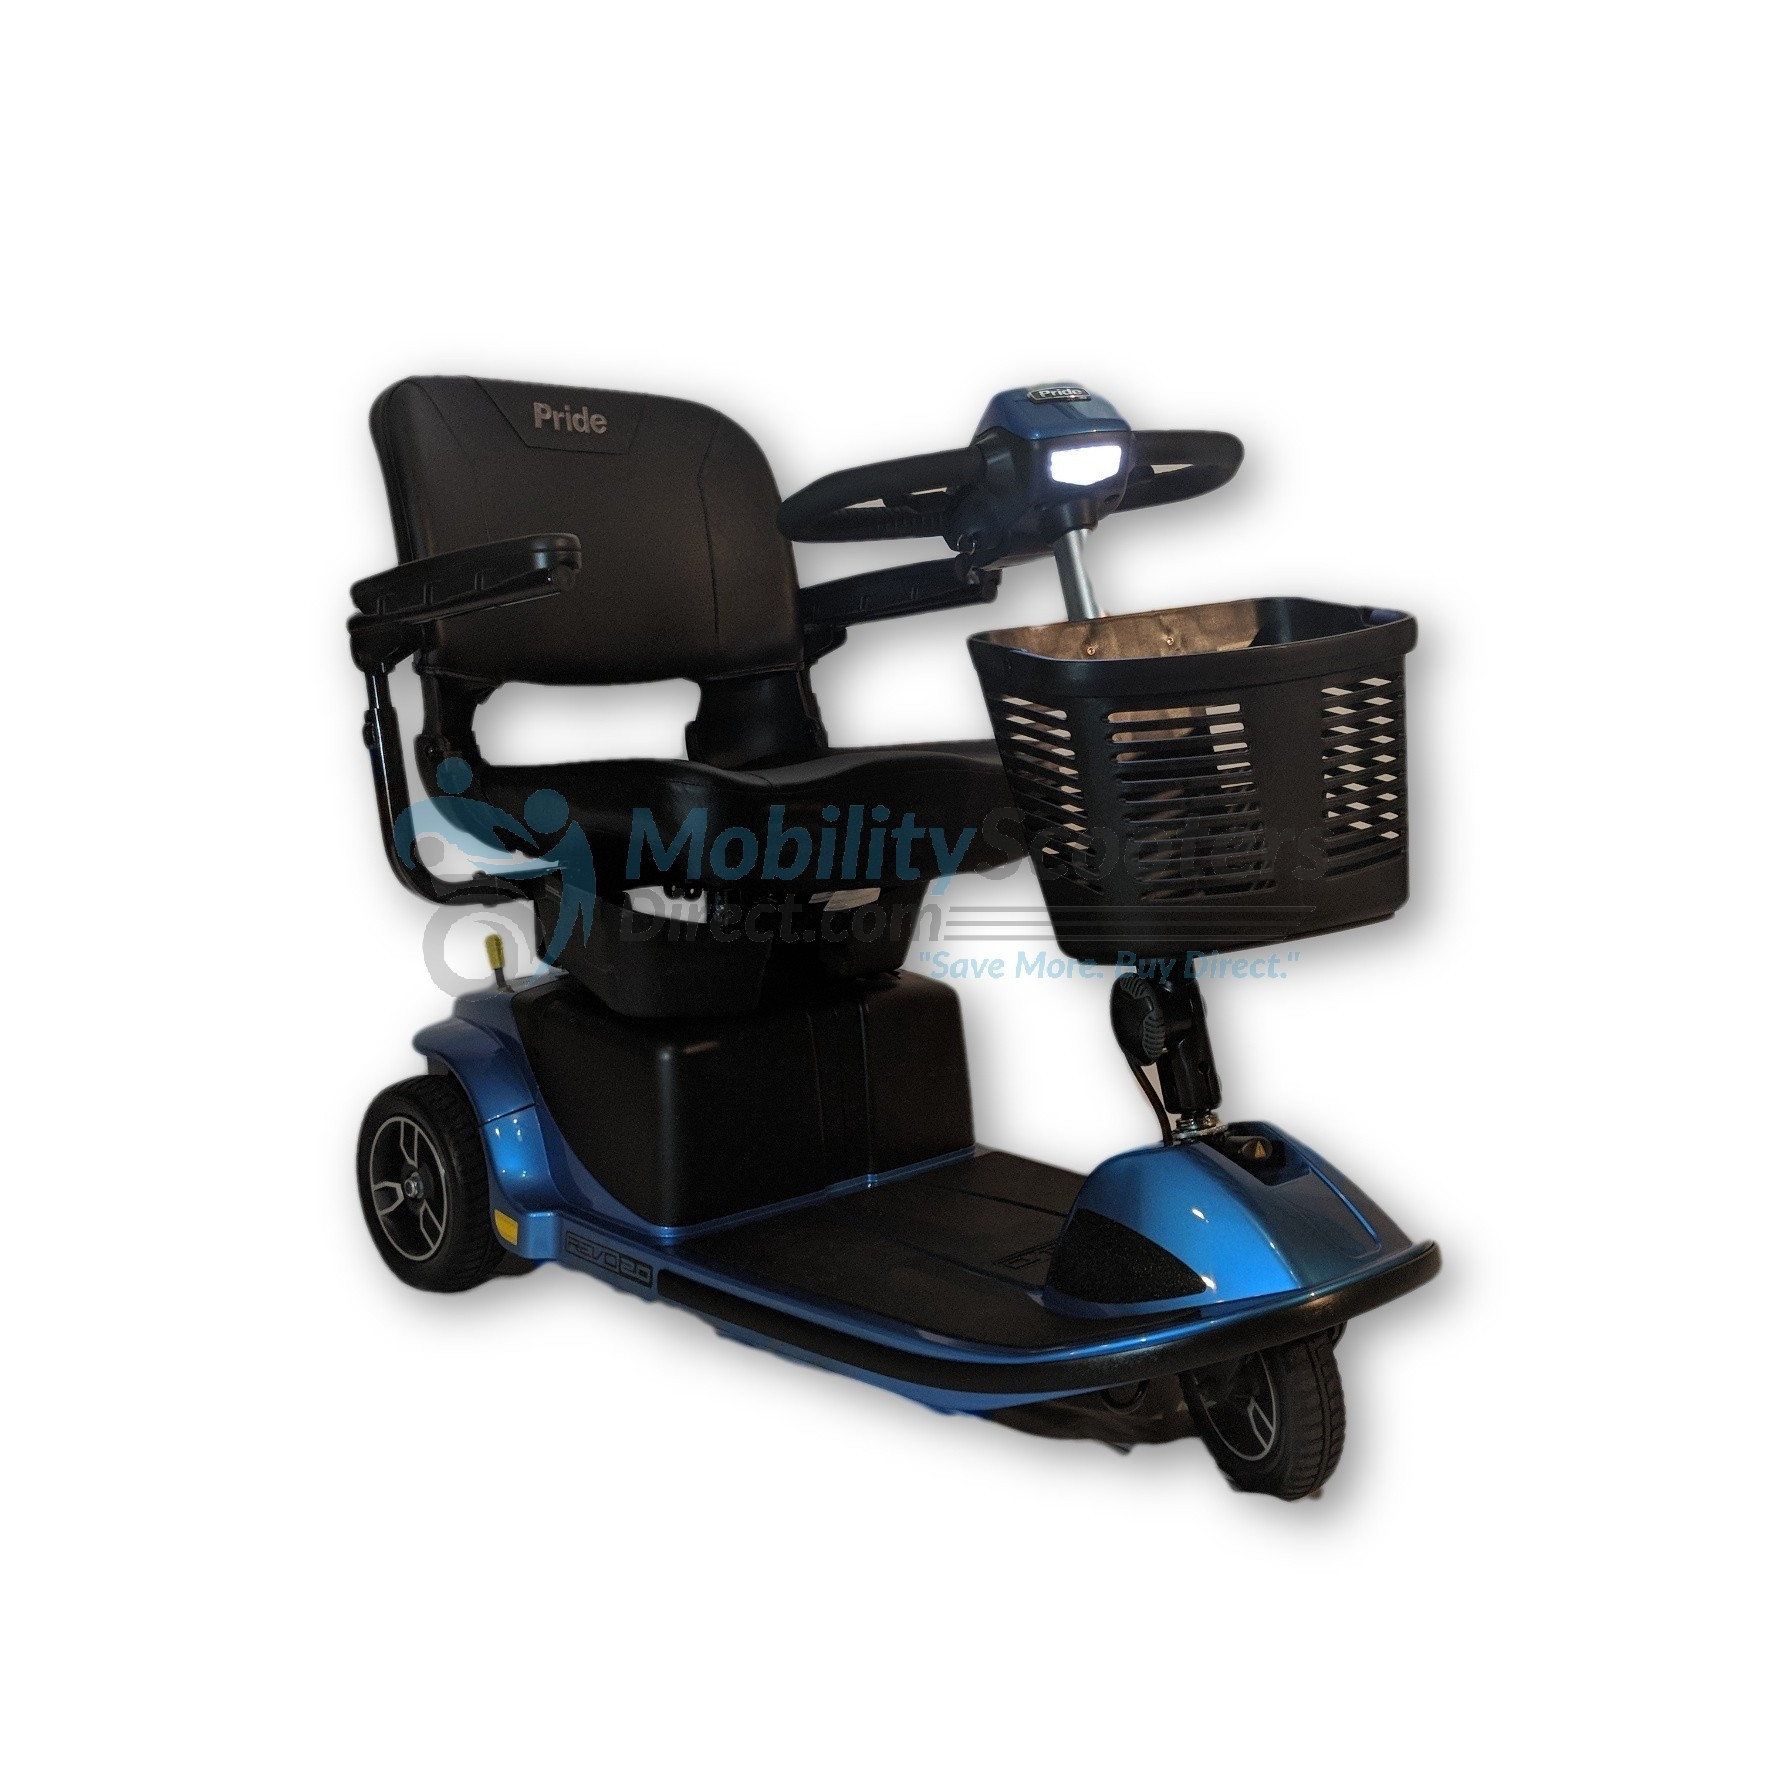 Pride Mobility Scooter >> Pride Revo 2 0 Mobility Scooter 3 Wheel